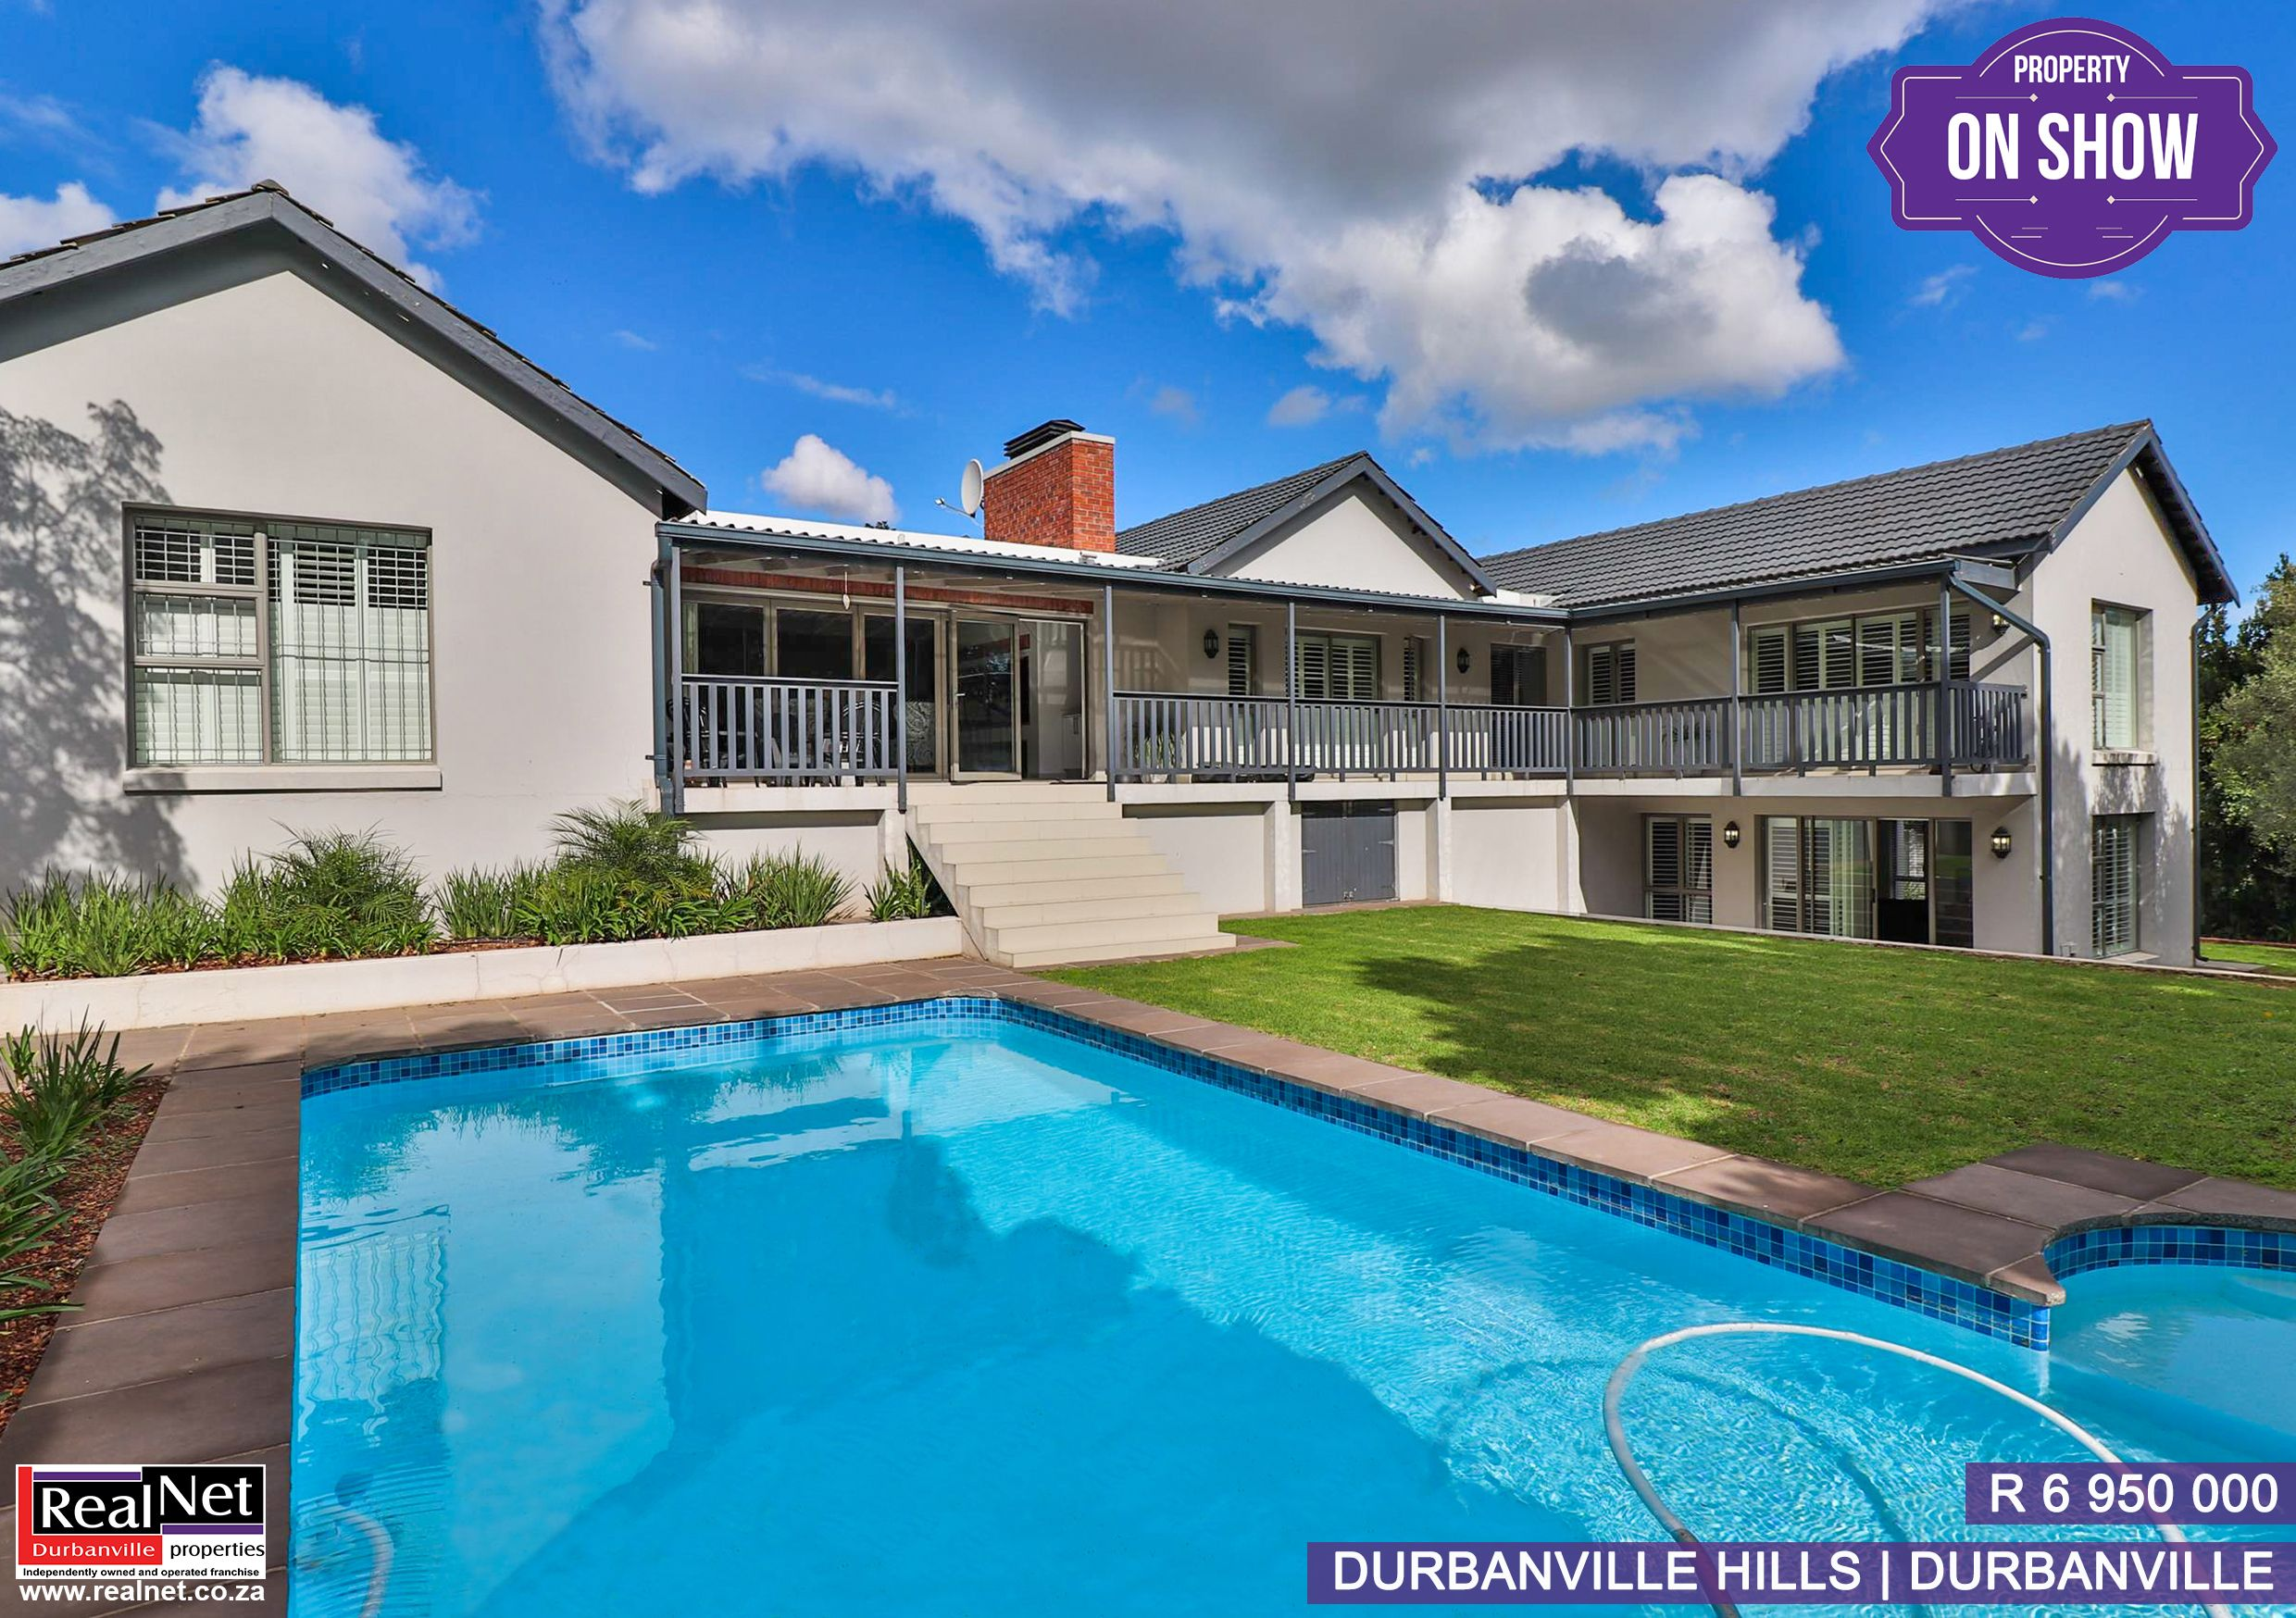 On Show Sunday 3 5 Pm You Are Welcome For More Information See Https Www Realnet Co Za Results Residential For Sale Durba House On A Hill House Property